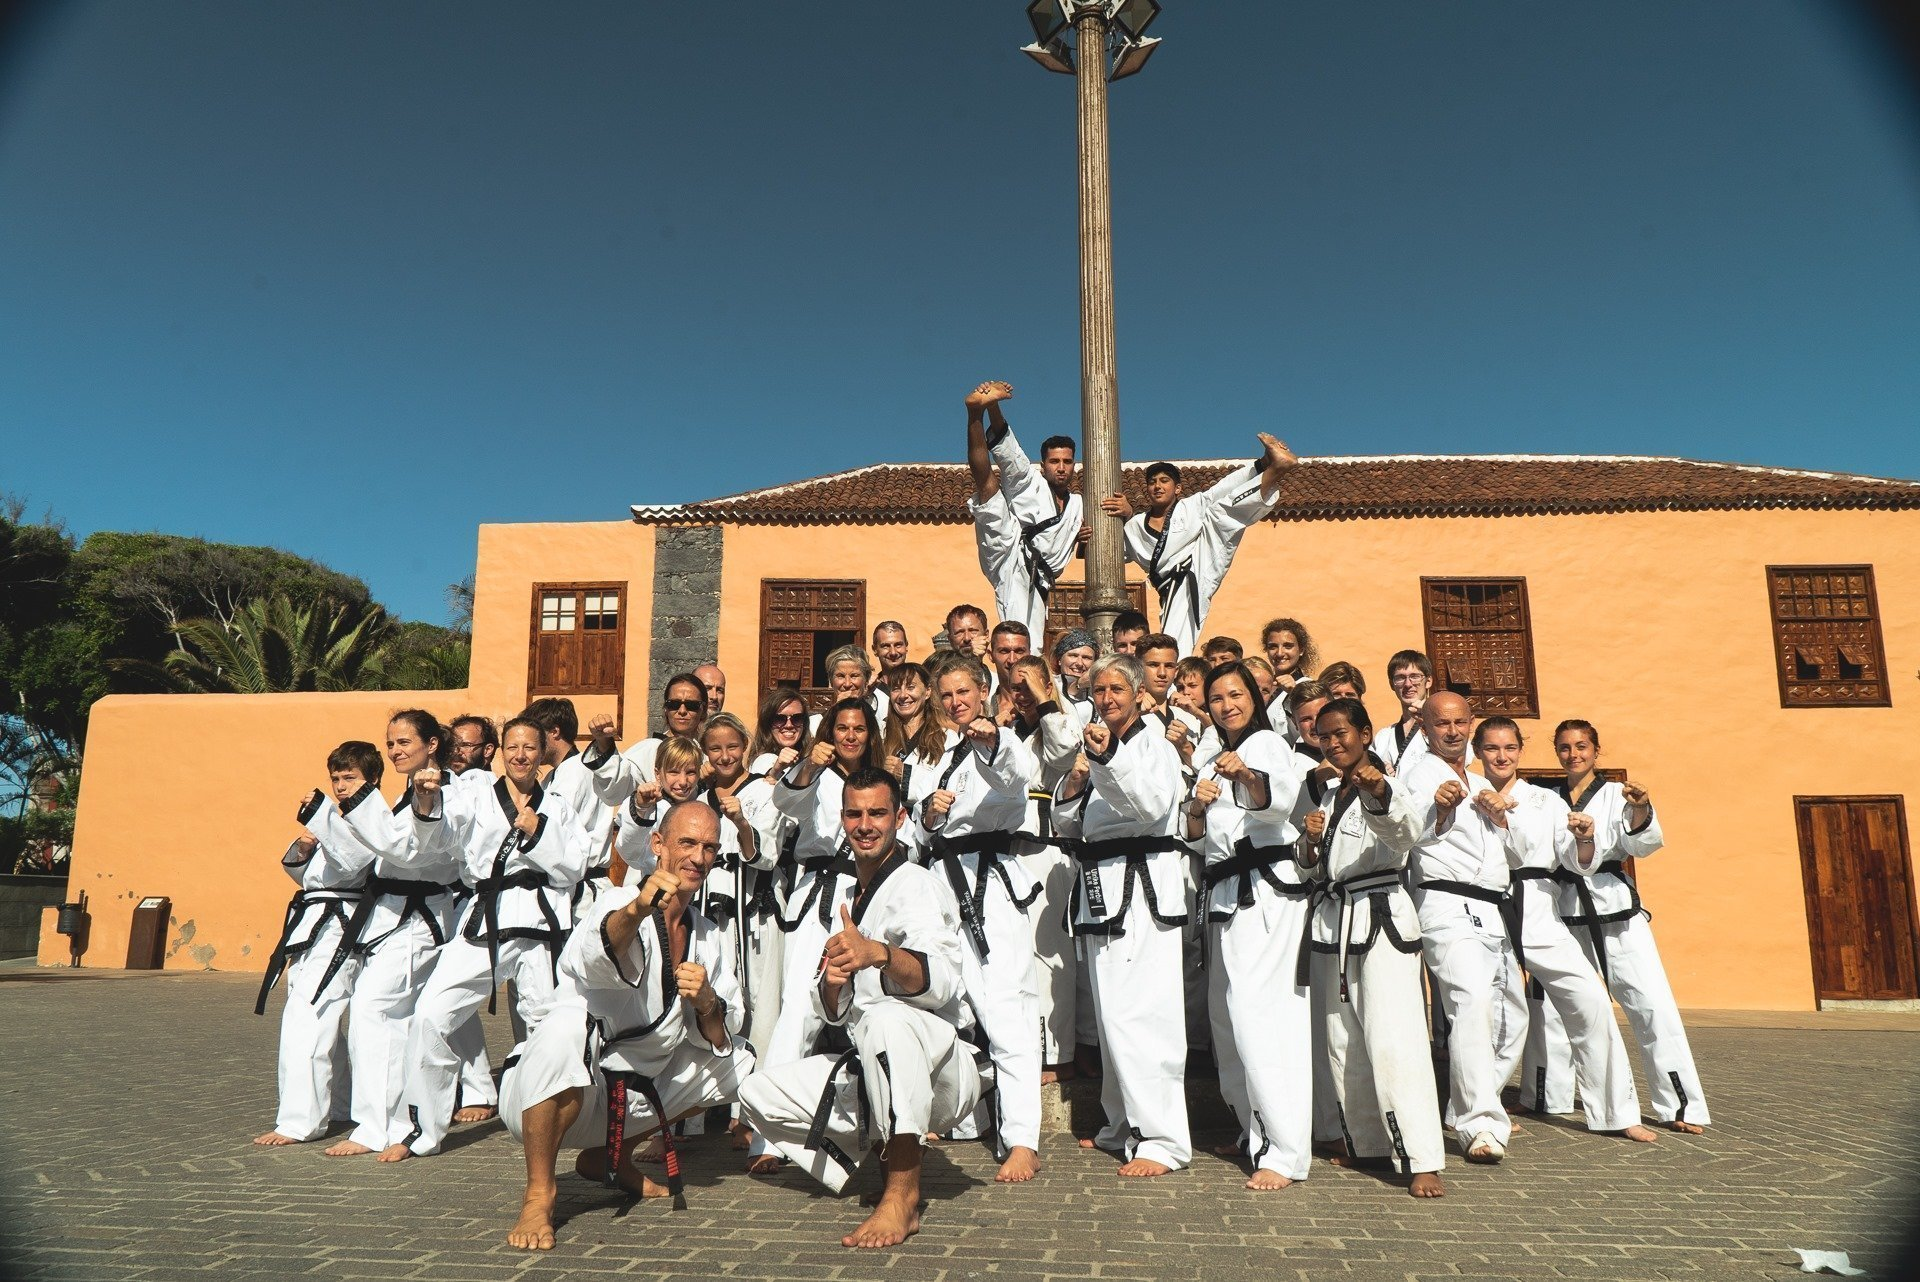 YOUNG-UNG Taekwondo Teneriffa Camp Training